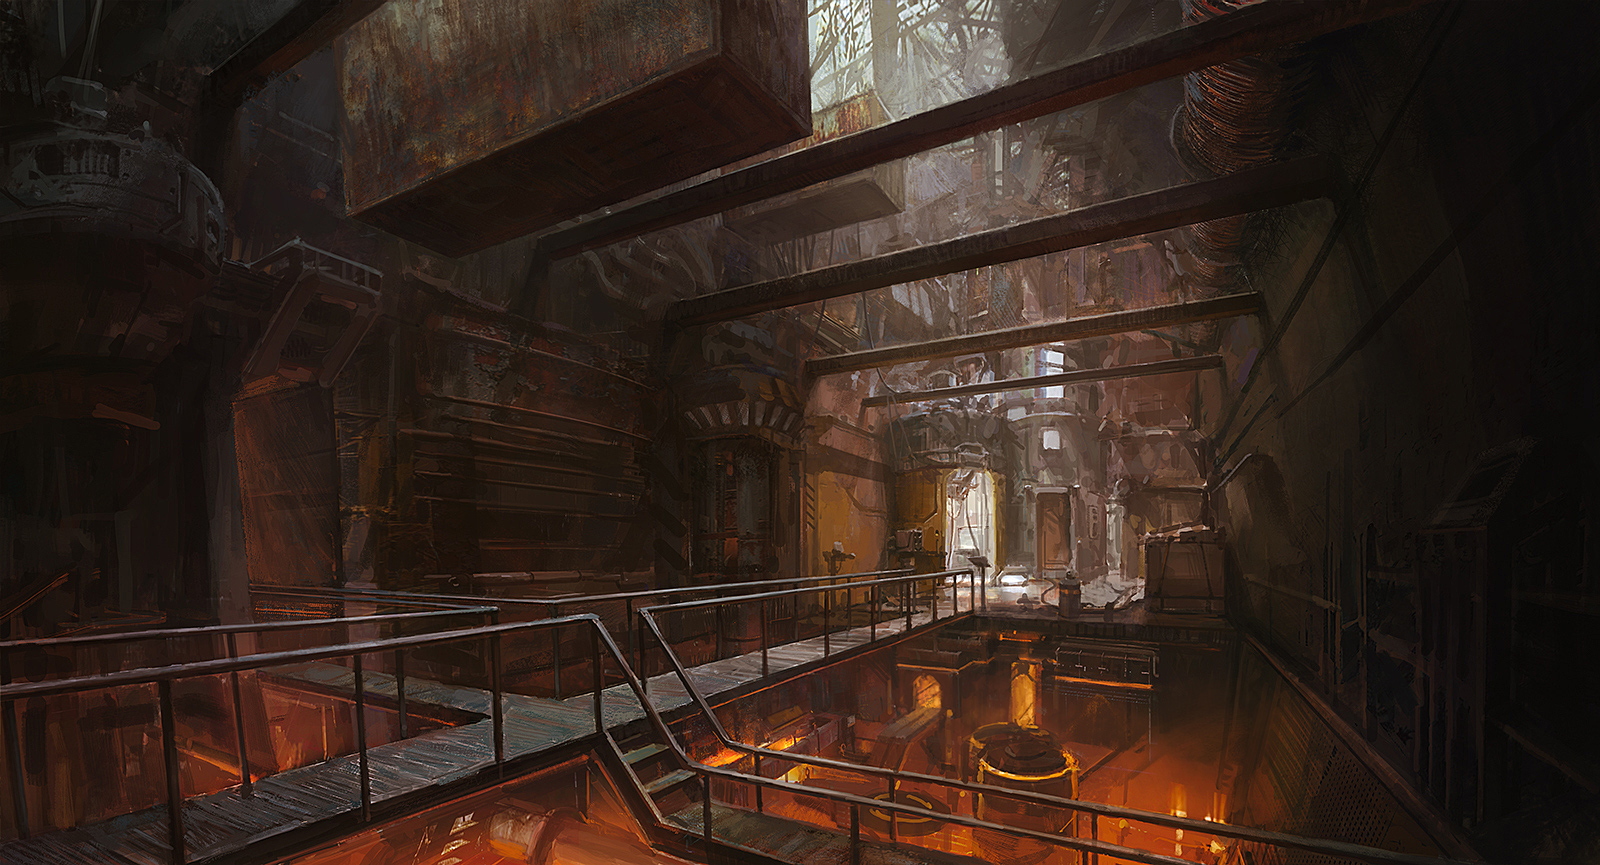 Sci-Fi industrial interior